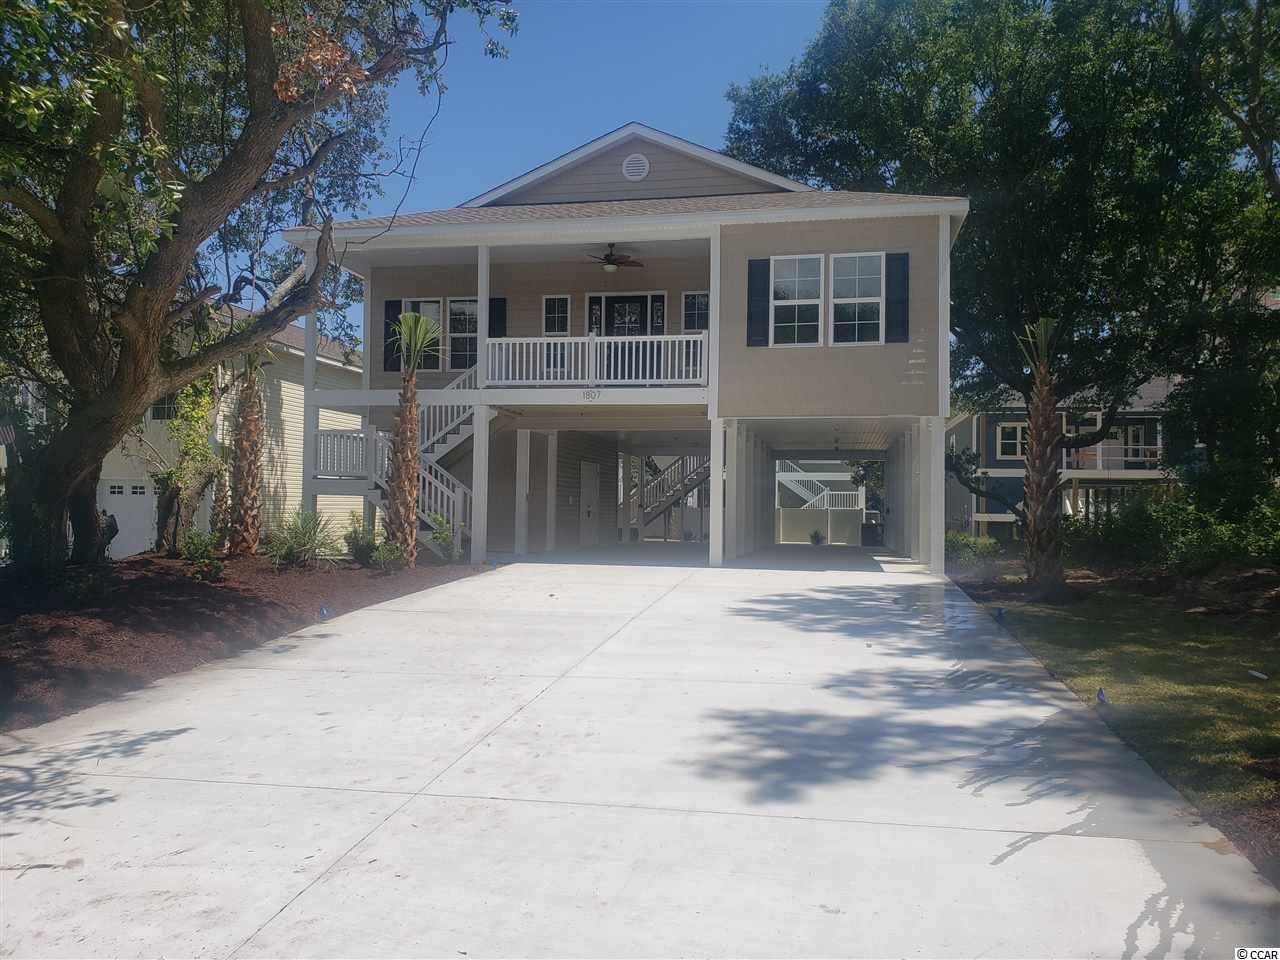 4BR / 3BA new construction raised beach home 2 blocks from the ocean in the Crescent Beach section of NMB. - Home feature s: 9 & 10' ceilings, crown molding, granite countertops in kitchen and baths, tile shower and double vanity in master, full appliance package, concrete drive and fully landscaped yard.